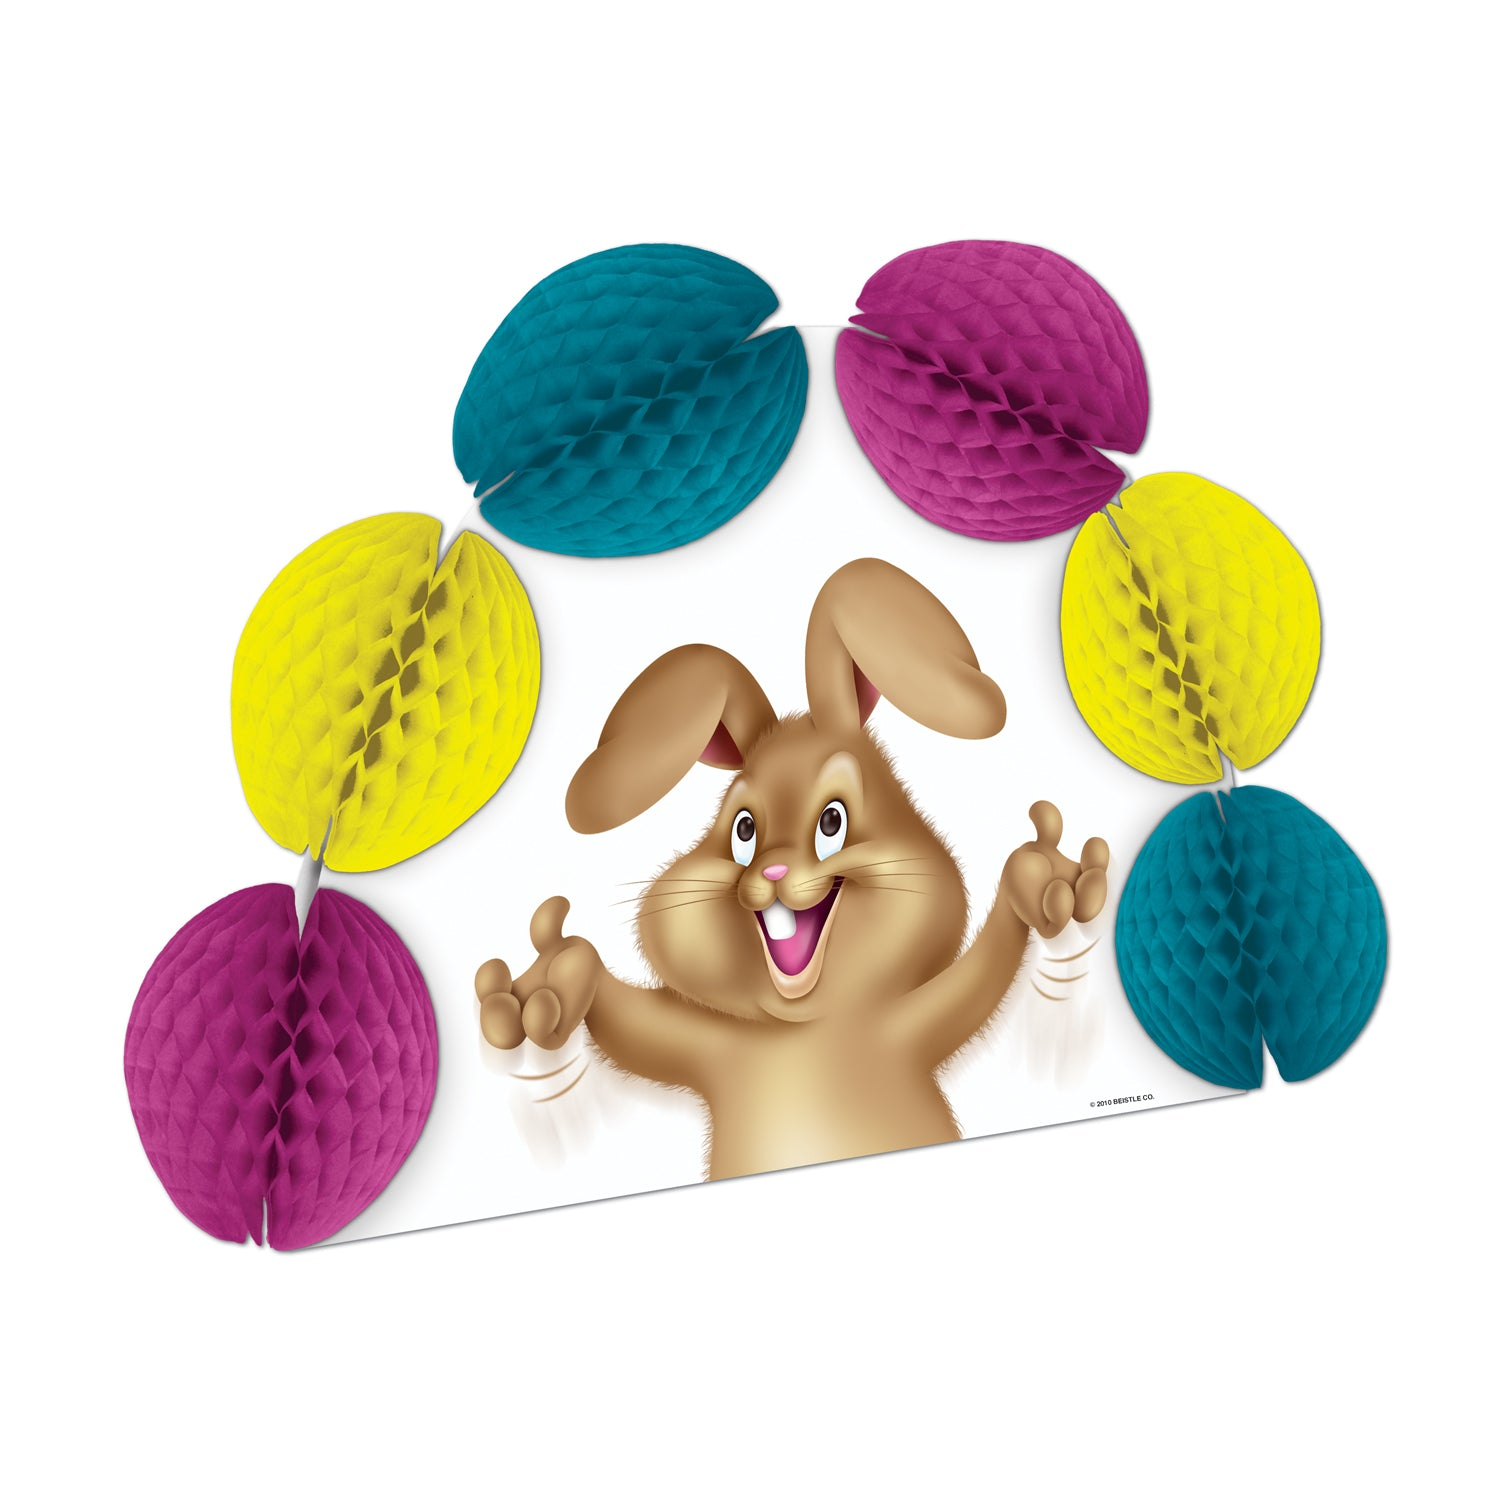 Easter Bunny Pop-Over Centerpiece by Beistle - Easter Theme Decorations